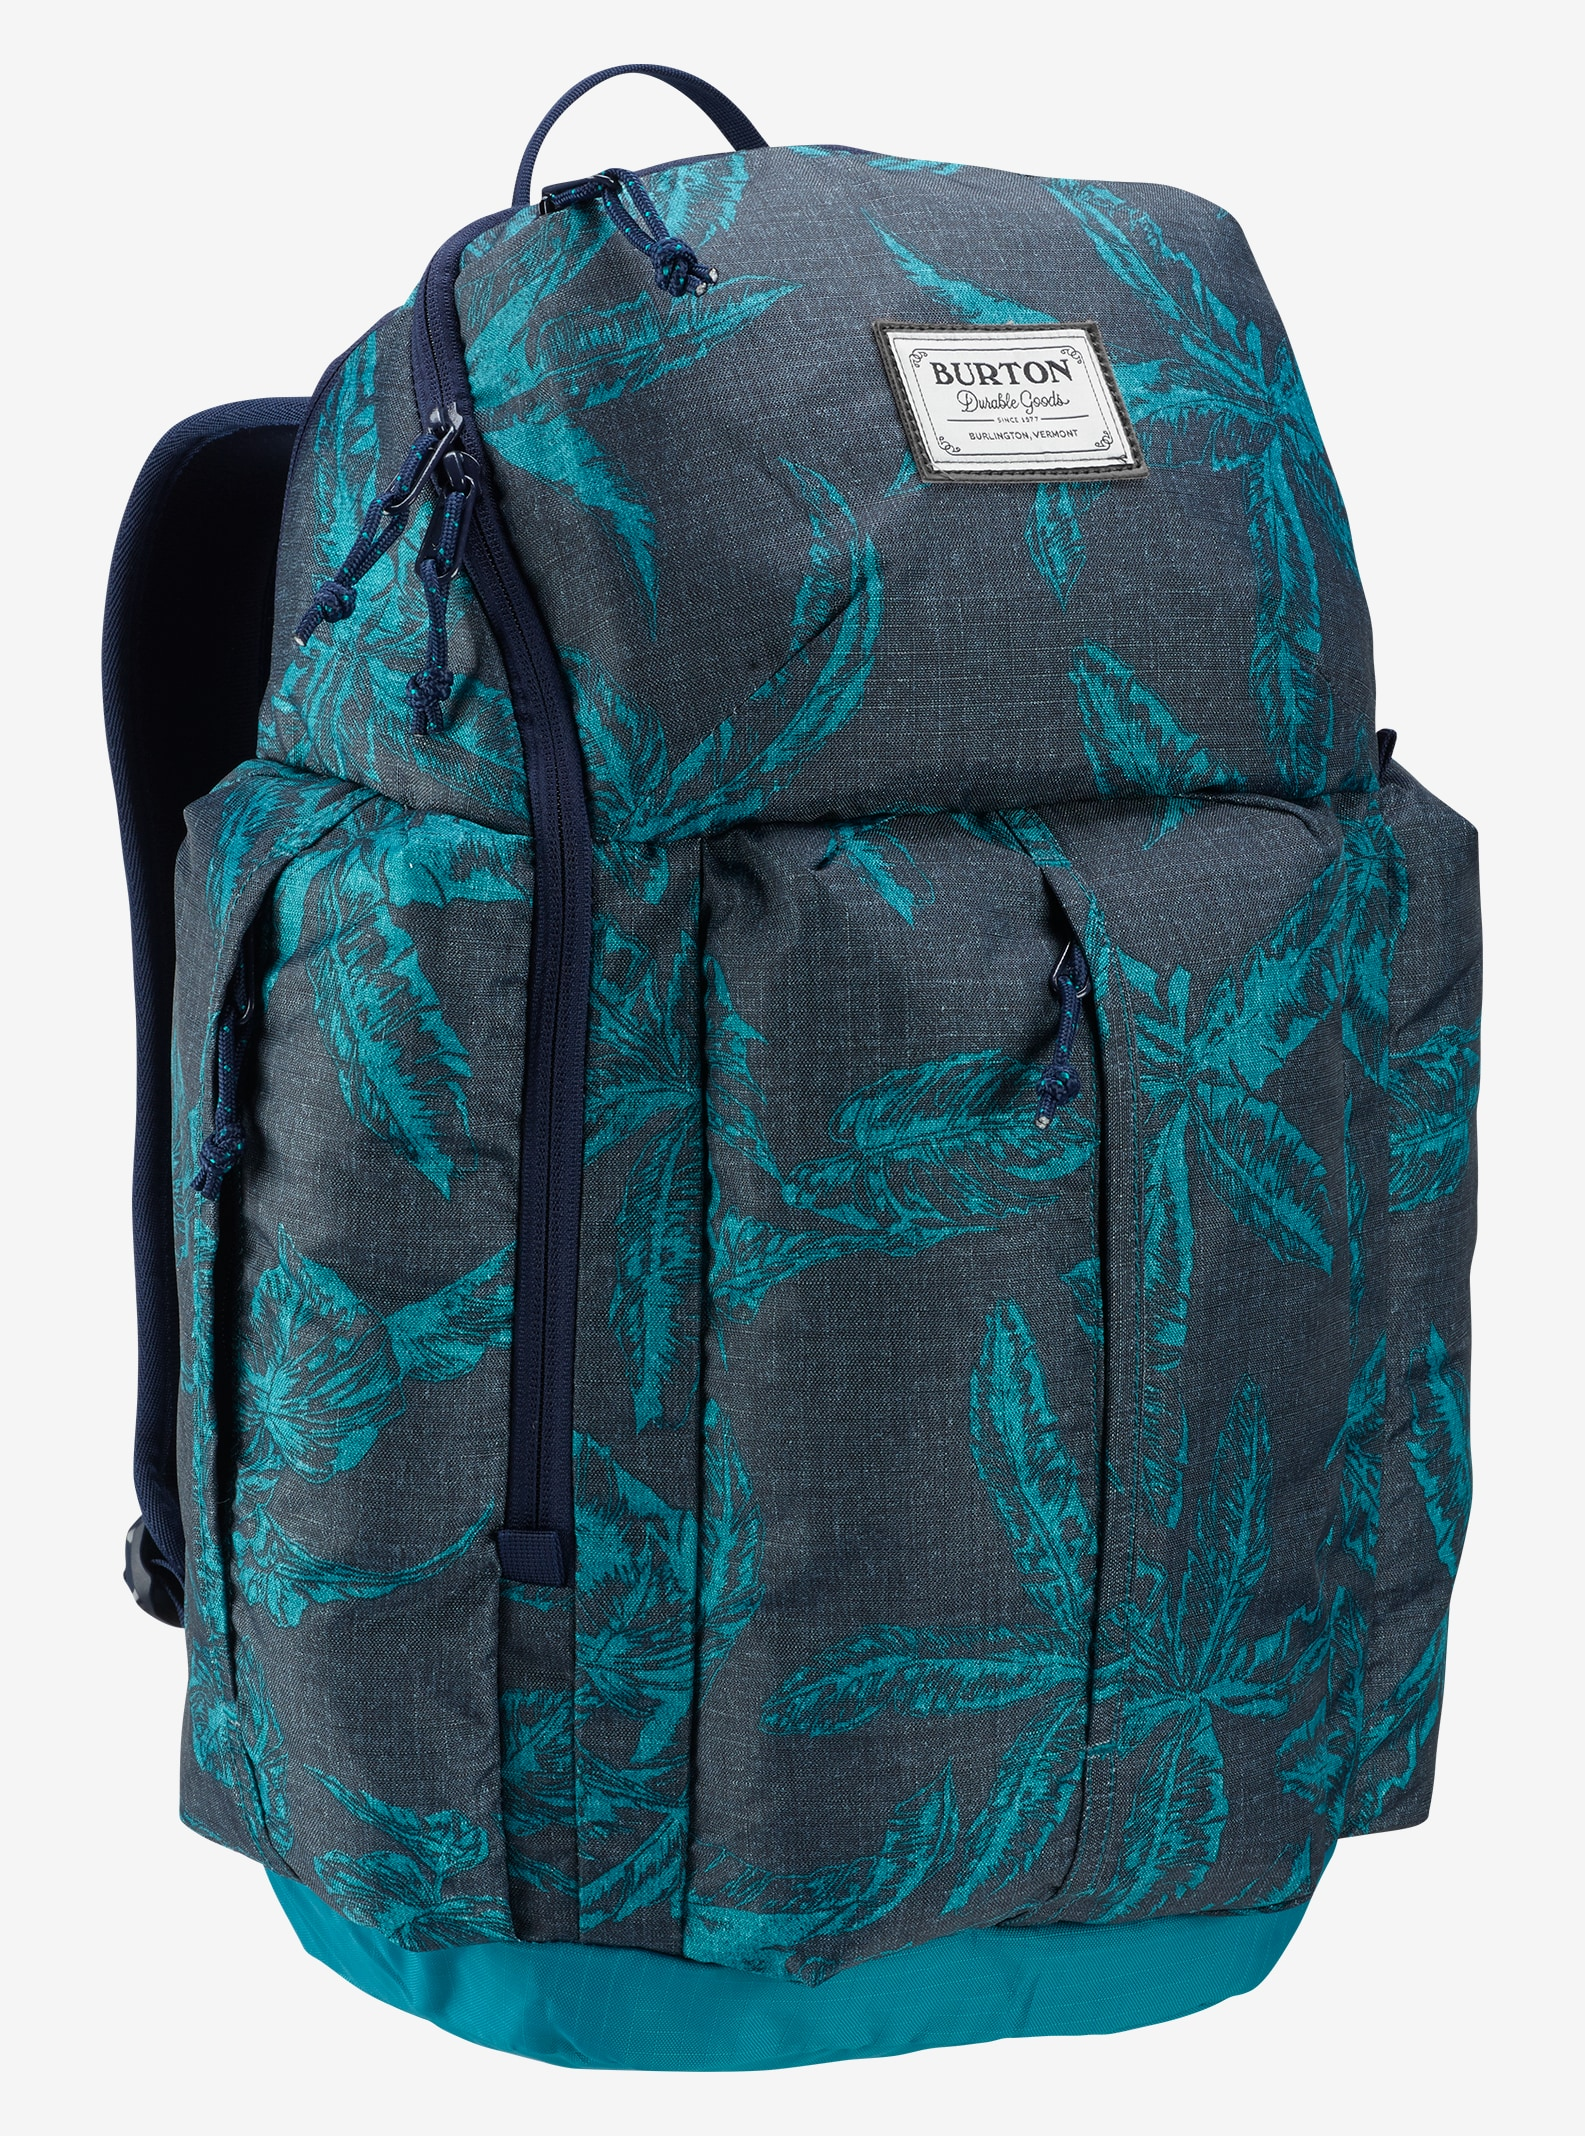 Burton Cadet Backpack shown in Tropical Print